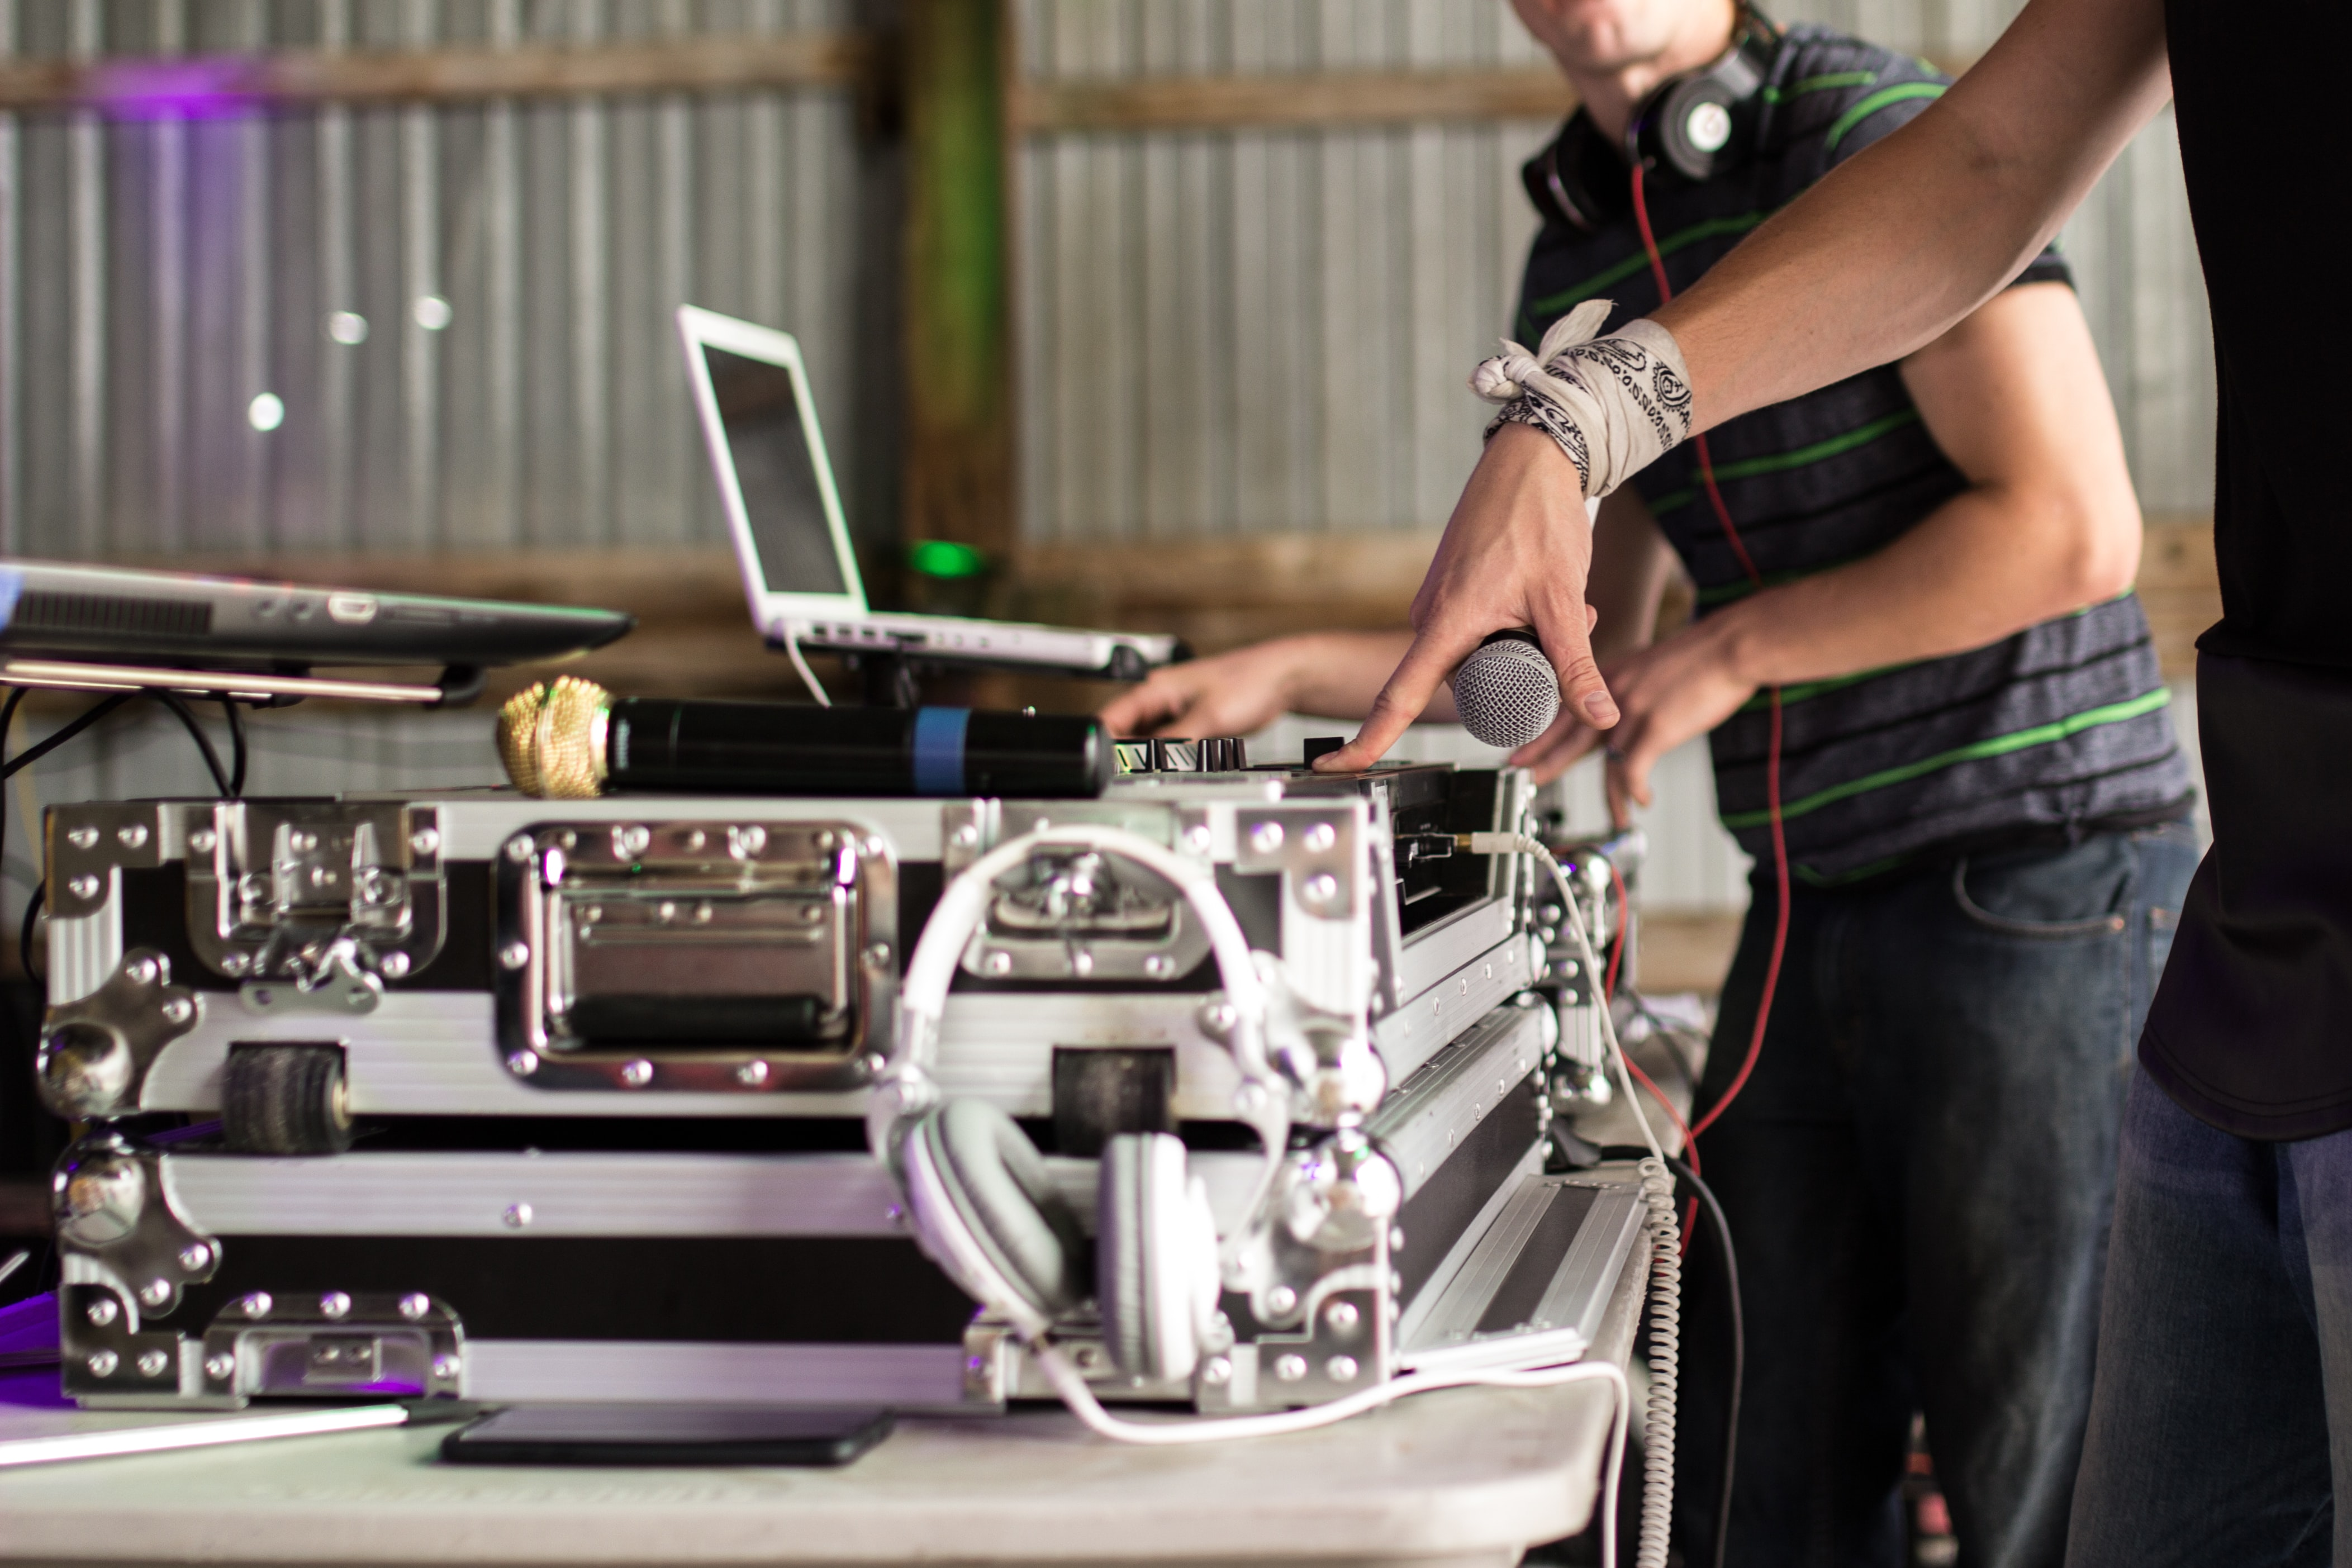 A DJ with a bandana wrapped around his wrist mixing on a turntable and mixer beside two laptops, a microphone, white headphones, a smartphone, and another DJ wearing beats headphones